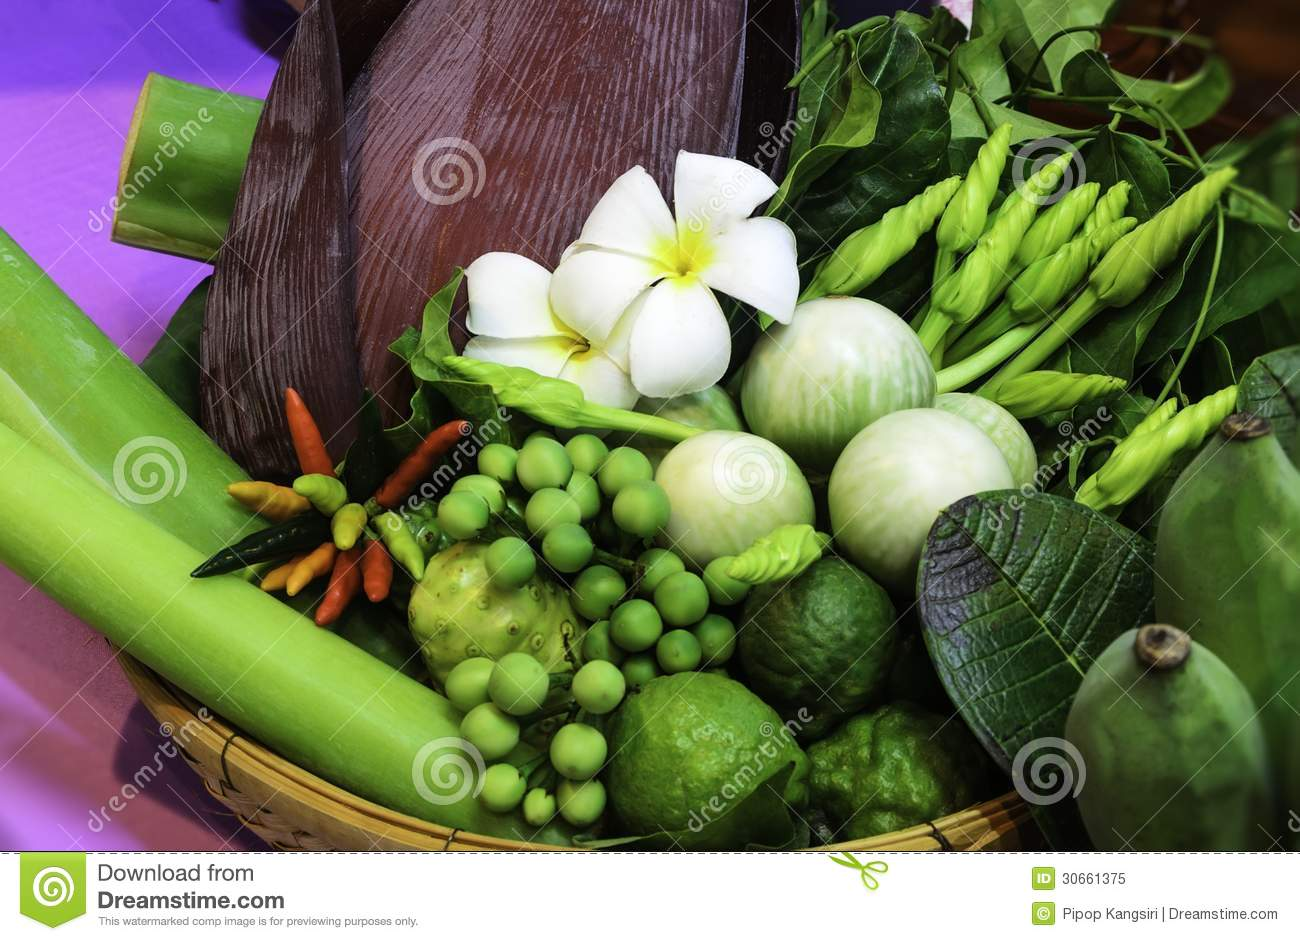 Beautiful vegetable royalty free stock photo image 30661375 for Beautiful vegetables